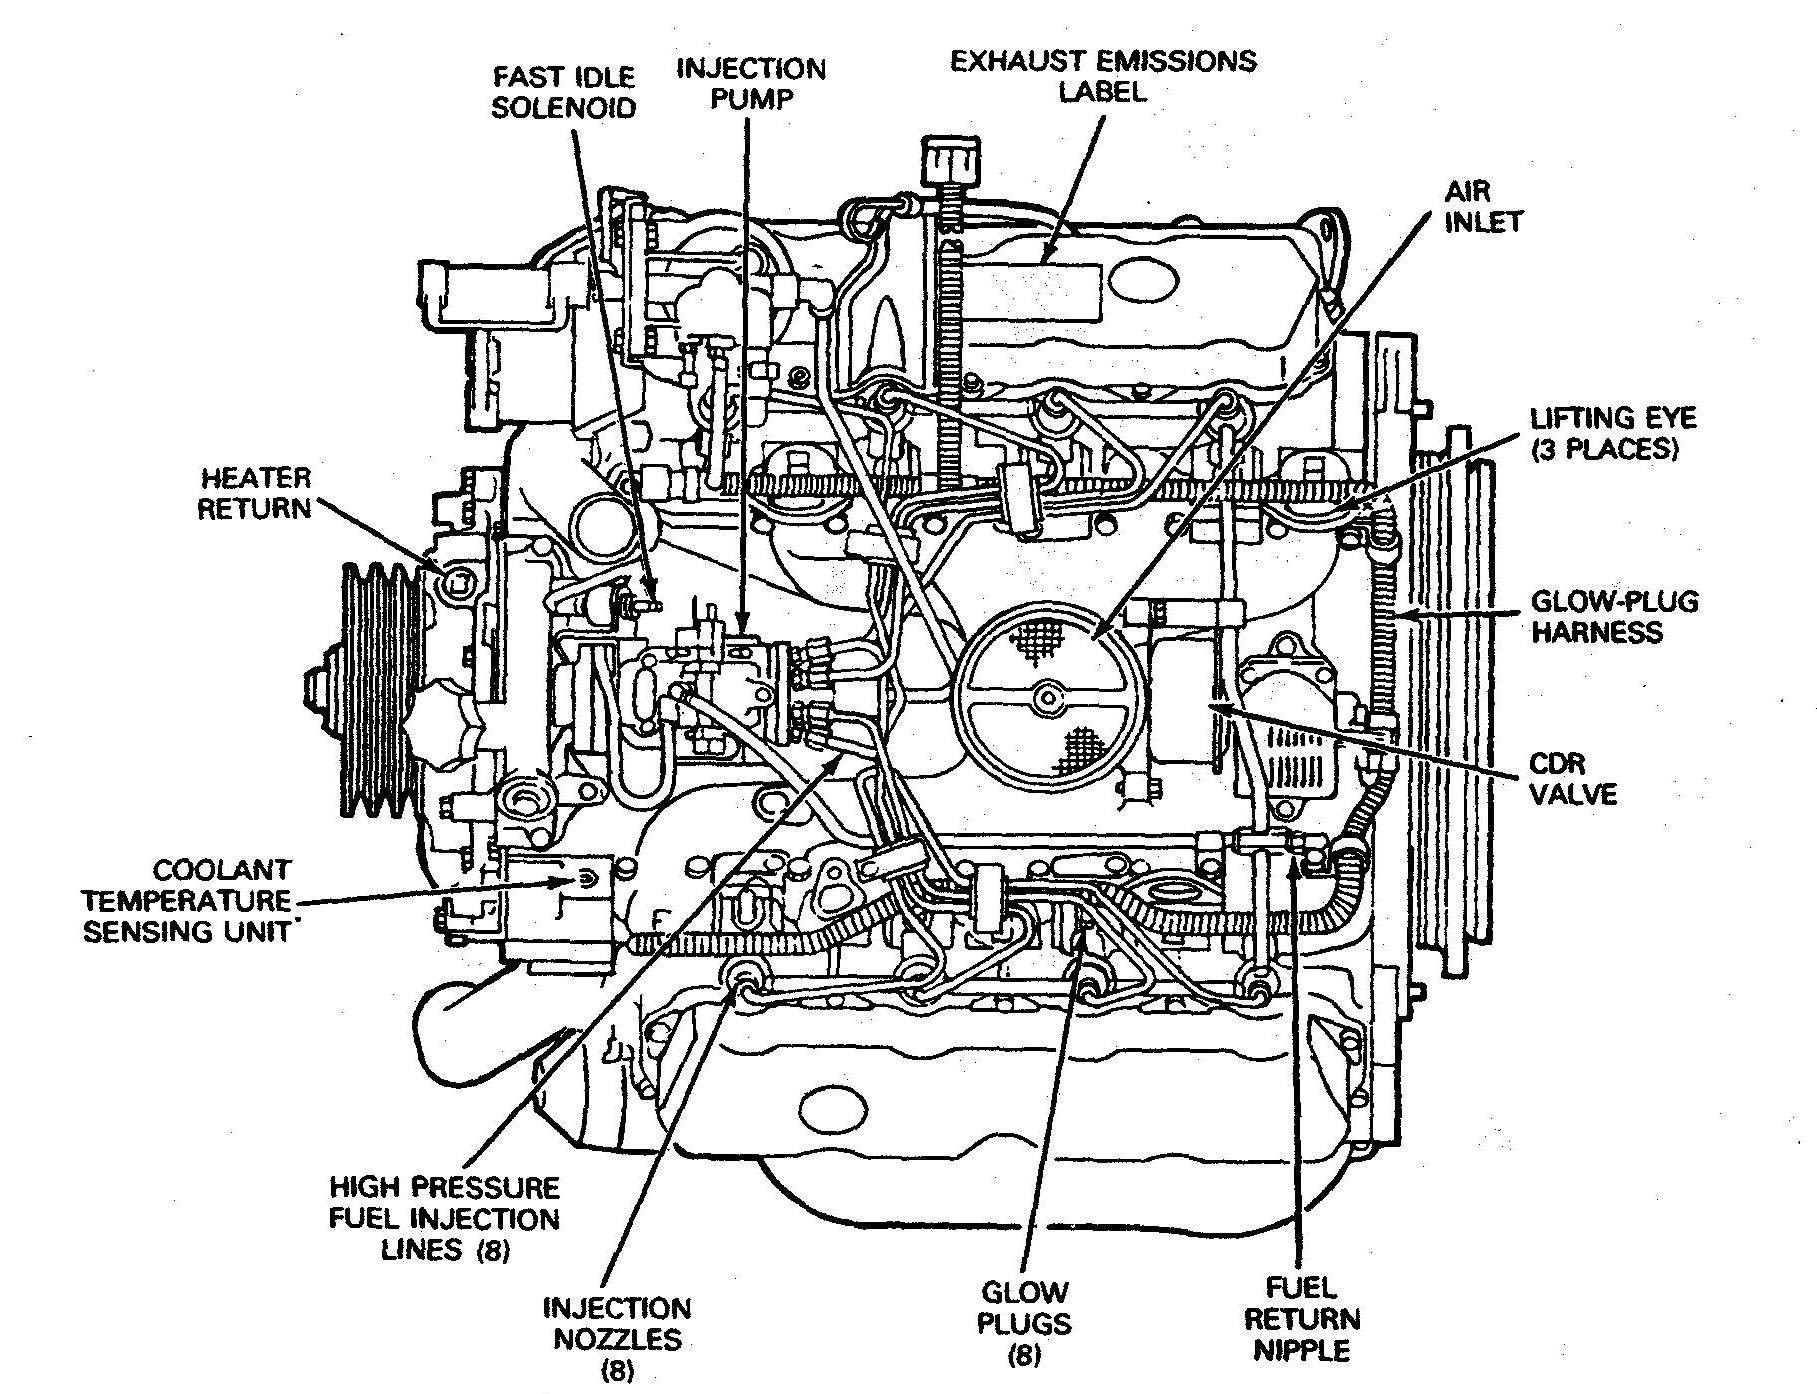 Bus Engine Diagram Bus Engine Diagram Lovely Car Engine Layout Contemporary Of Bus Engine Diagram